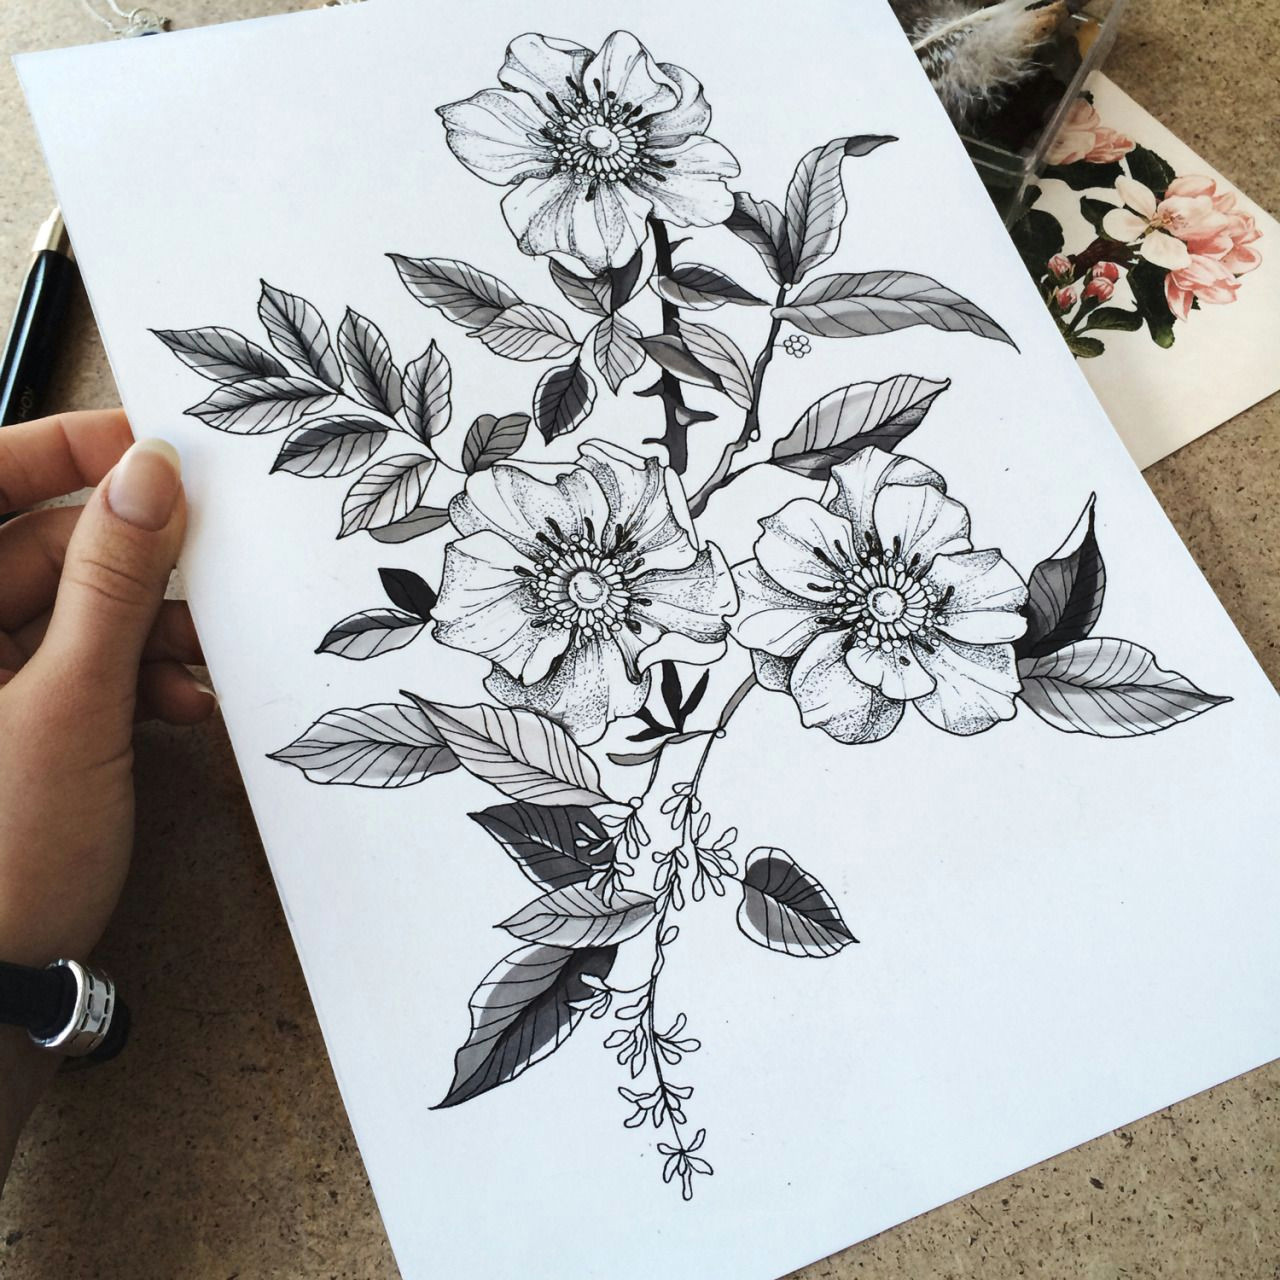 Drawings Of Wild Roses Familyinktattoo Wild Roses Tattooskech Body Modification